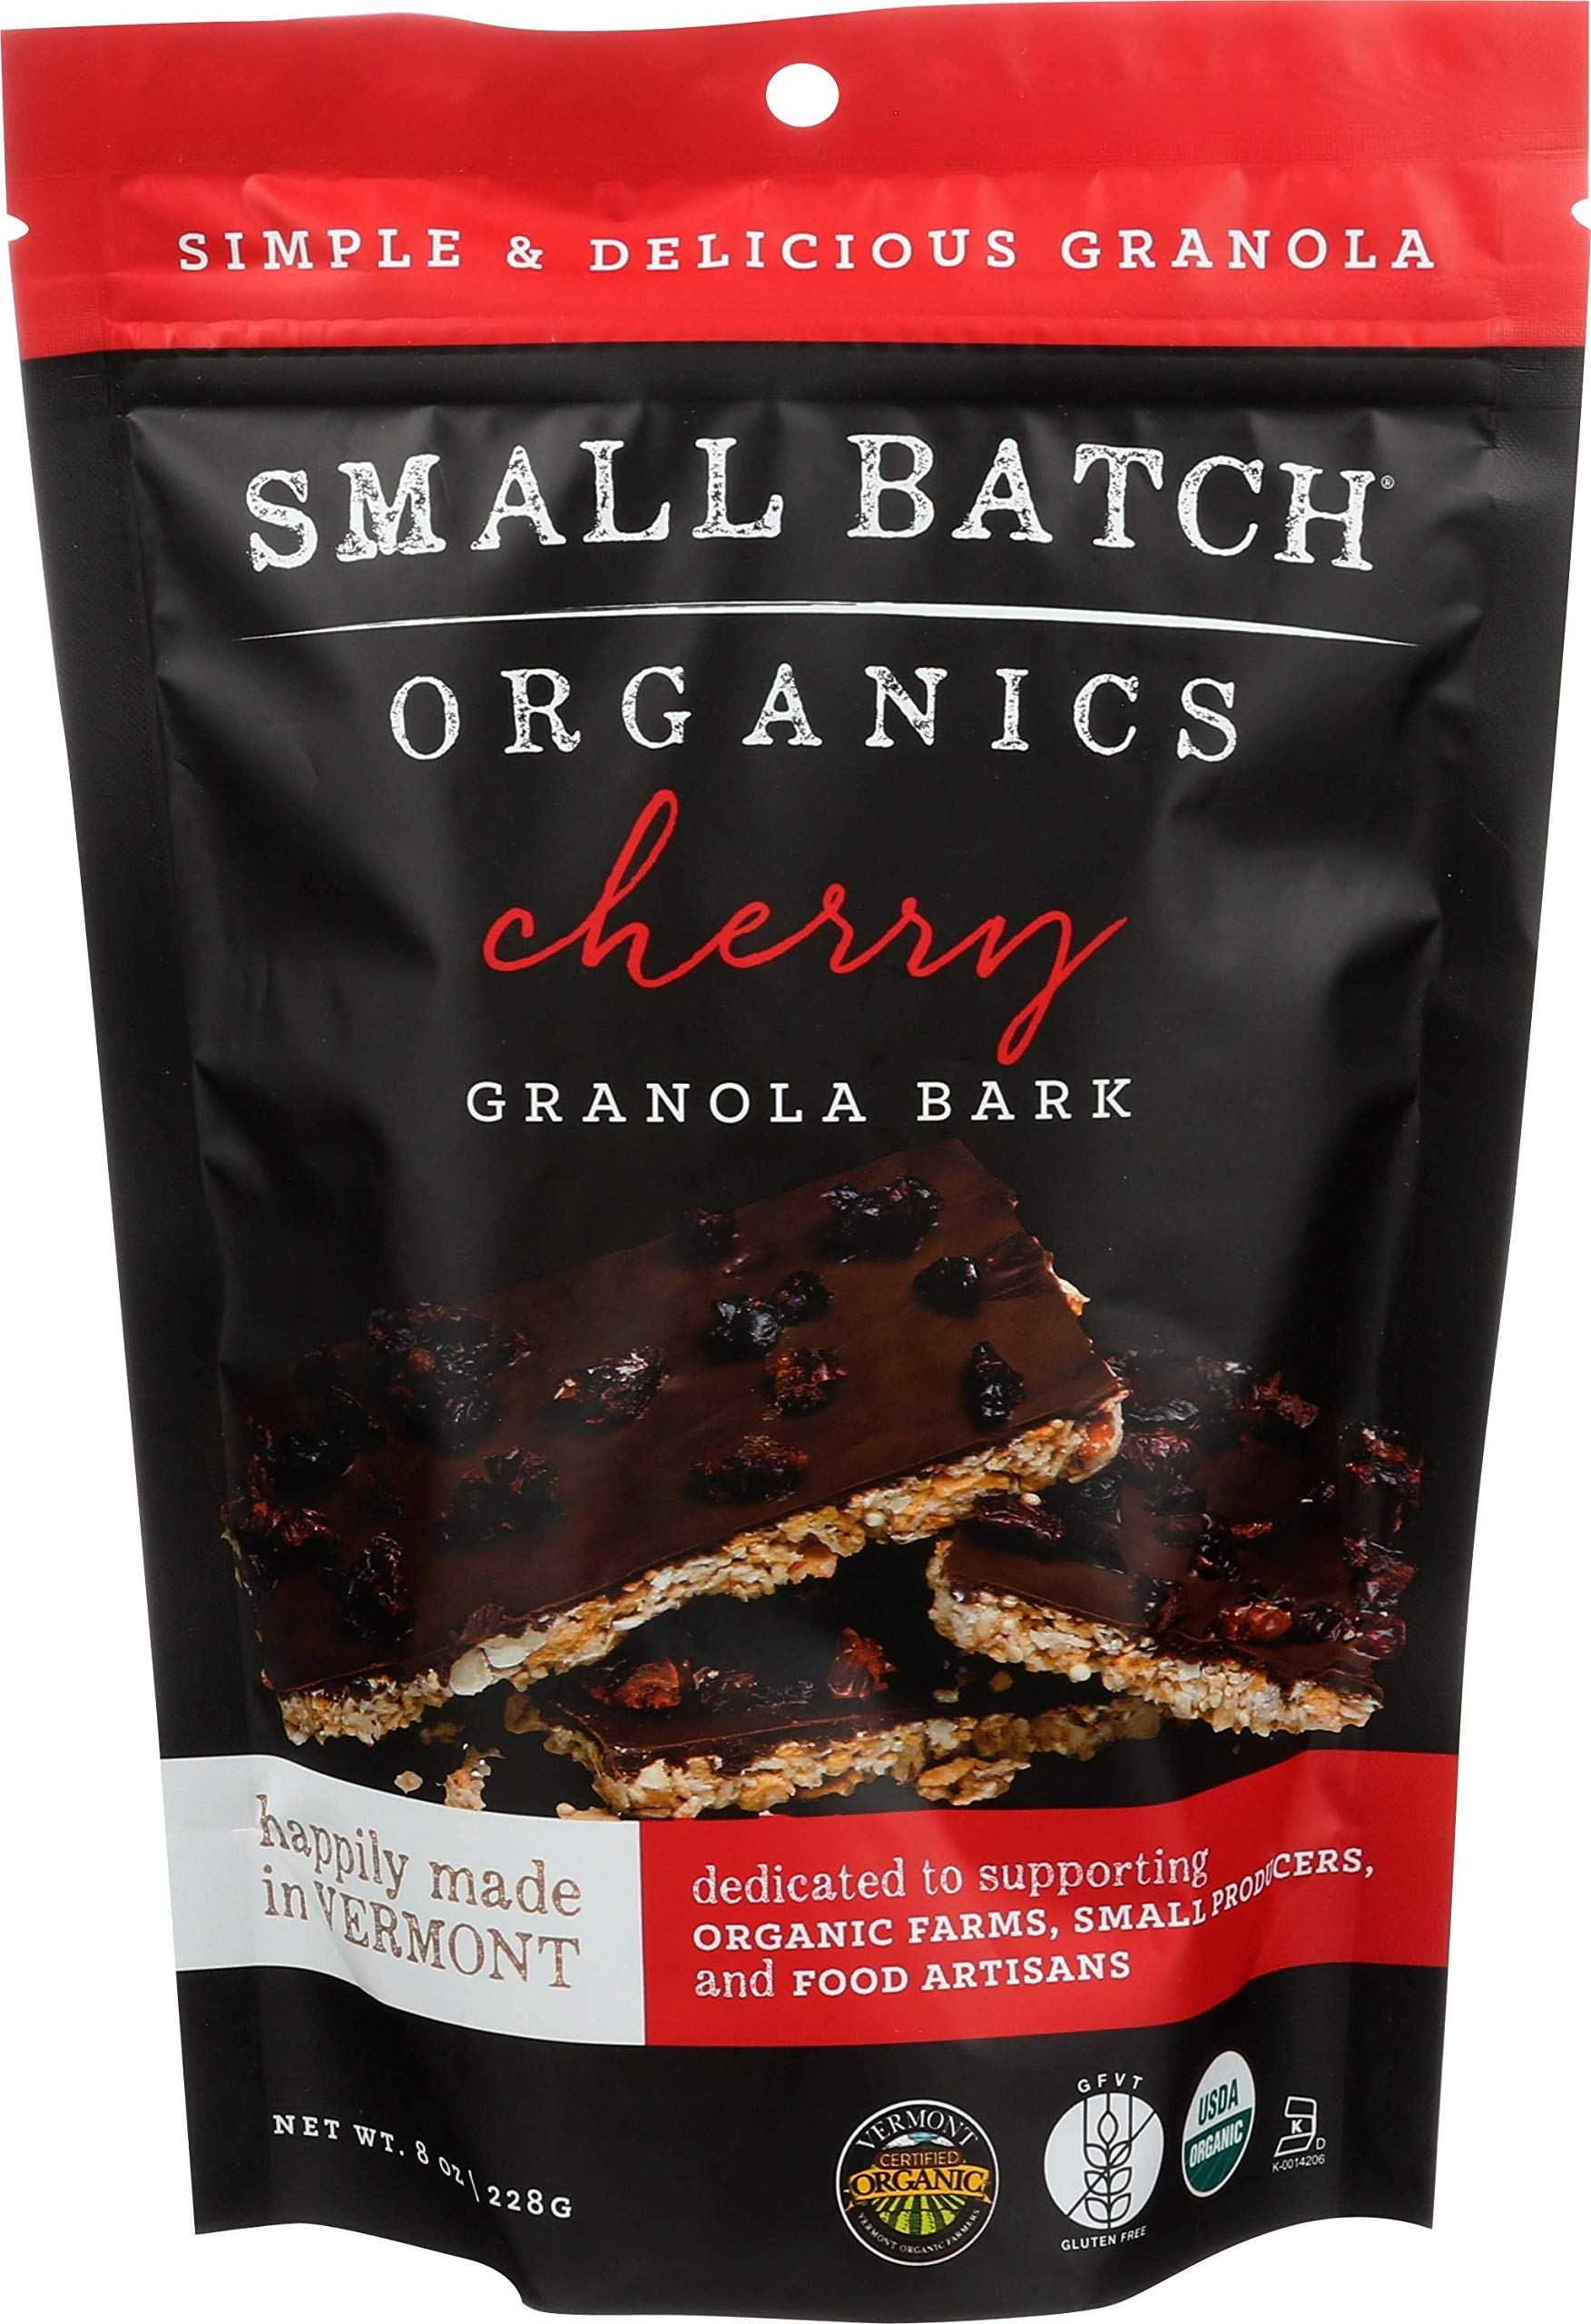 SMALL BATCH ORGANICS Organic Cherry Bark Granola, 8 OZ by Small Batch Organics (Image #1)